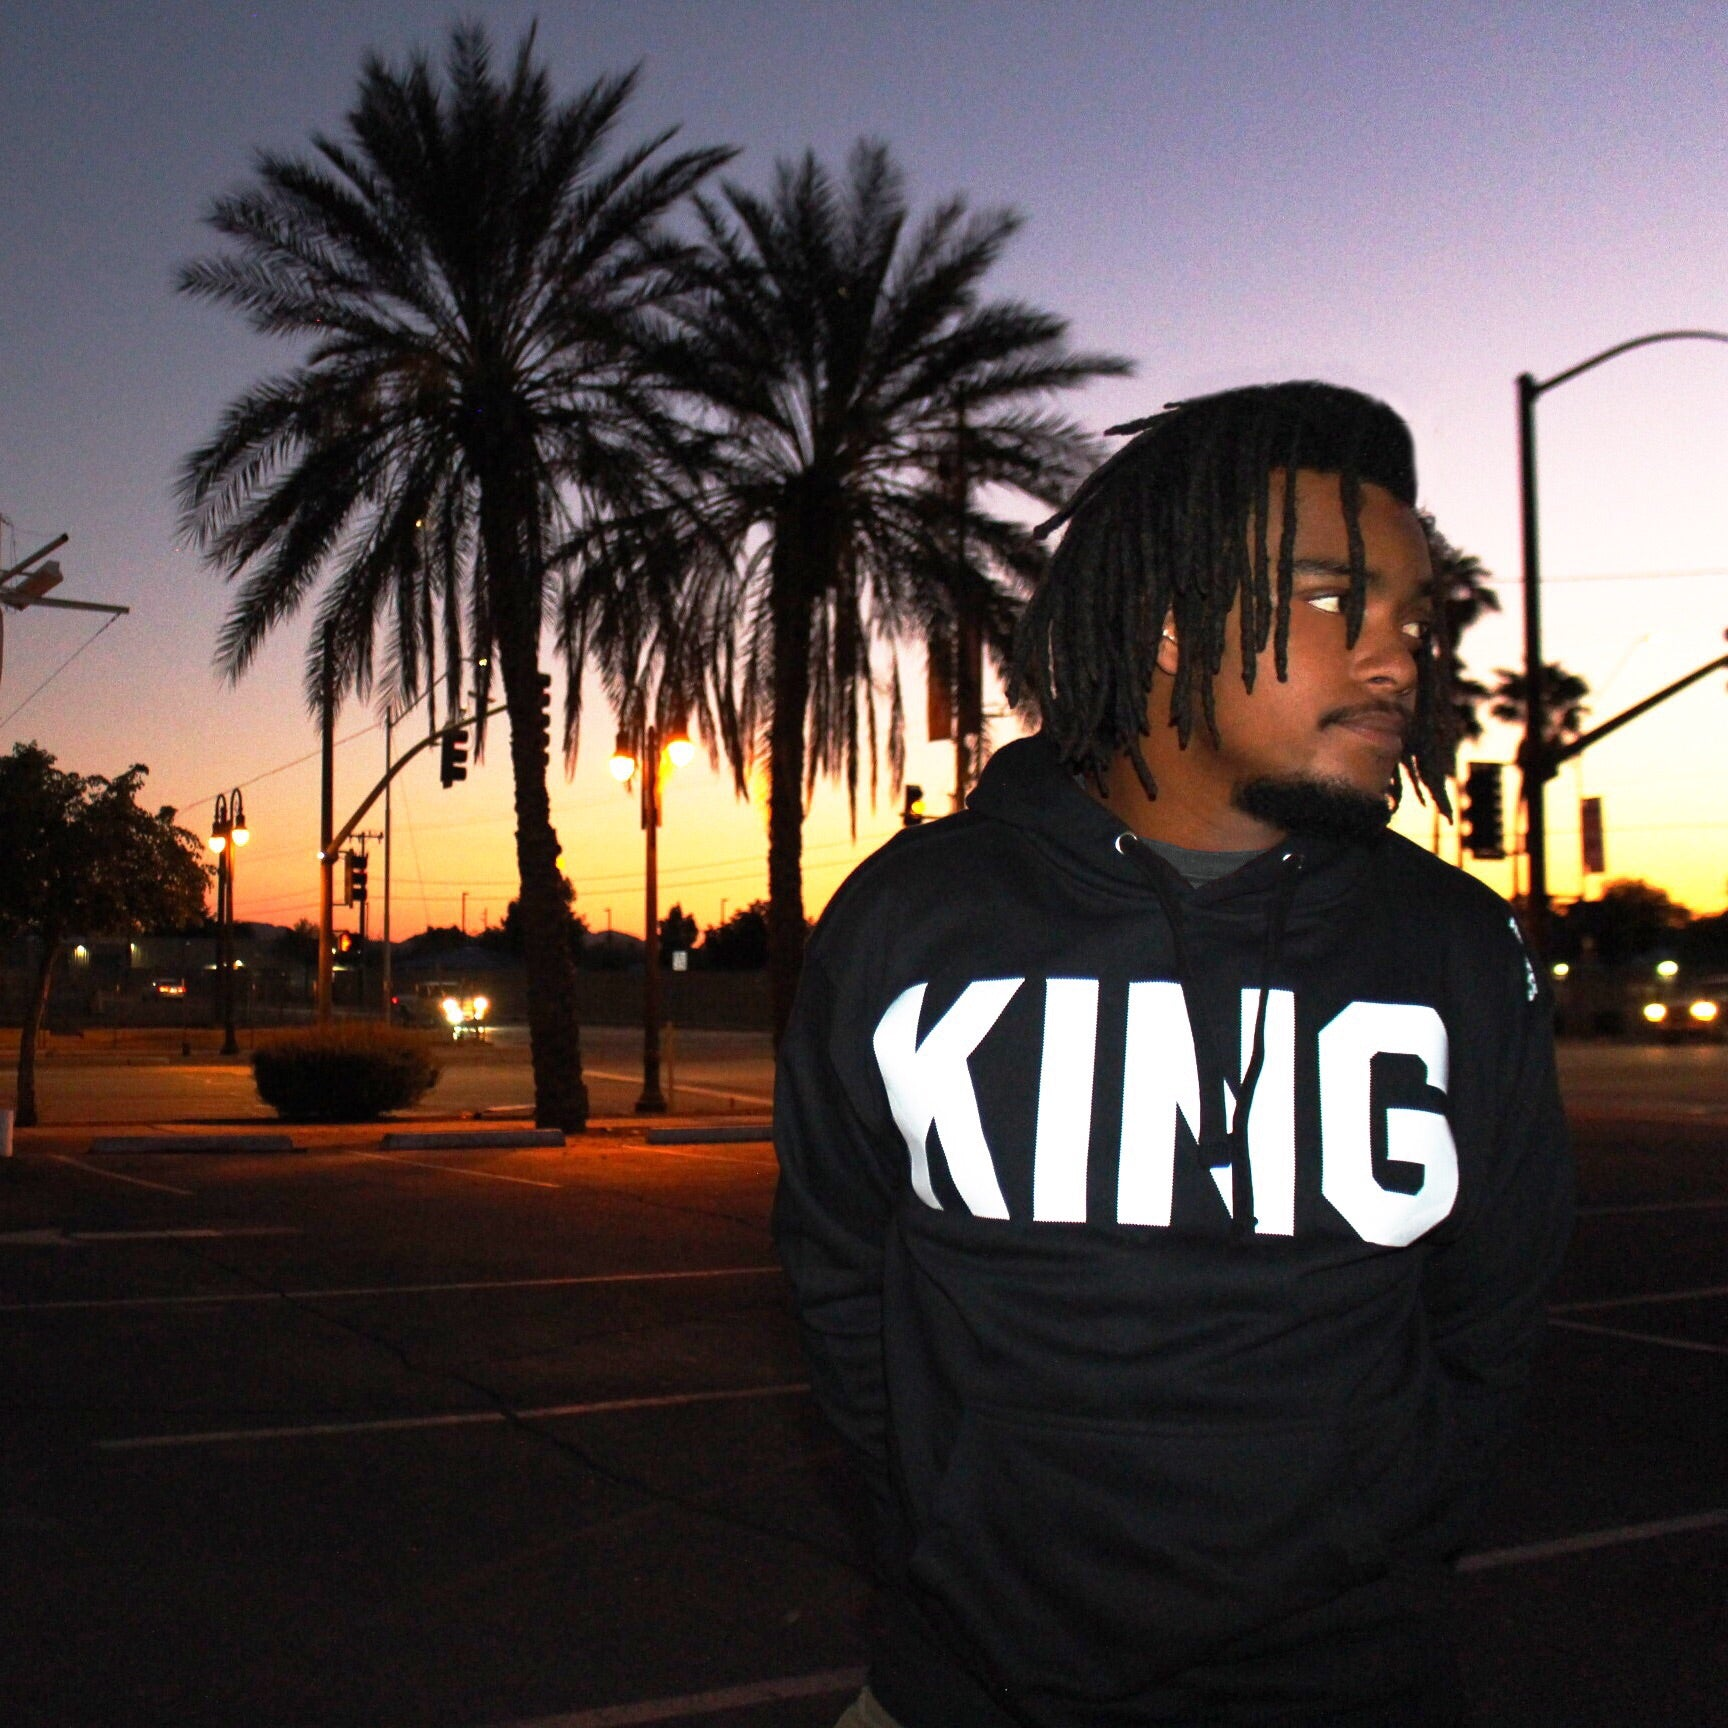 KING 2 Sweatshirt